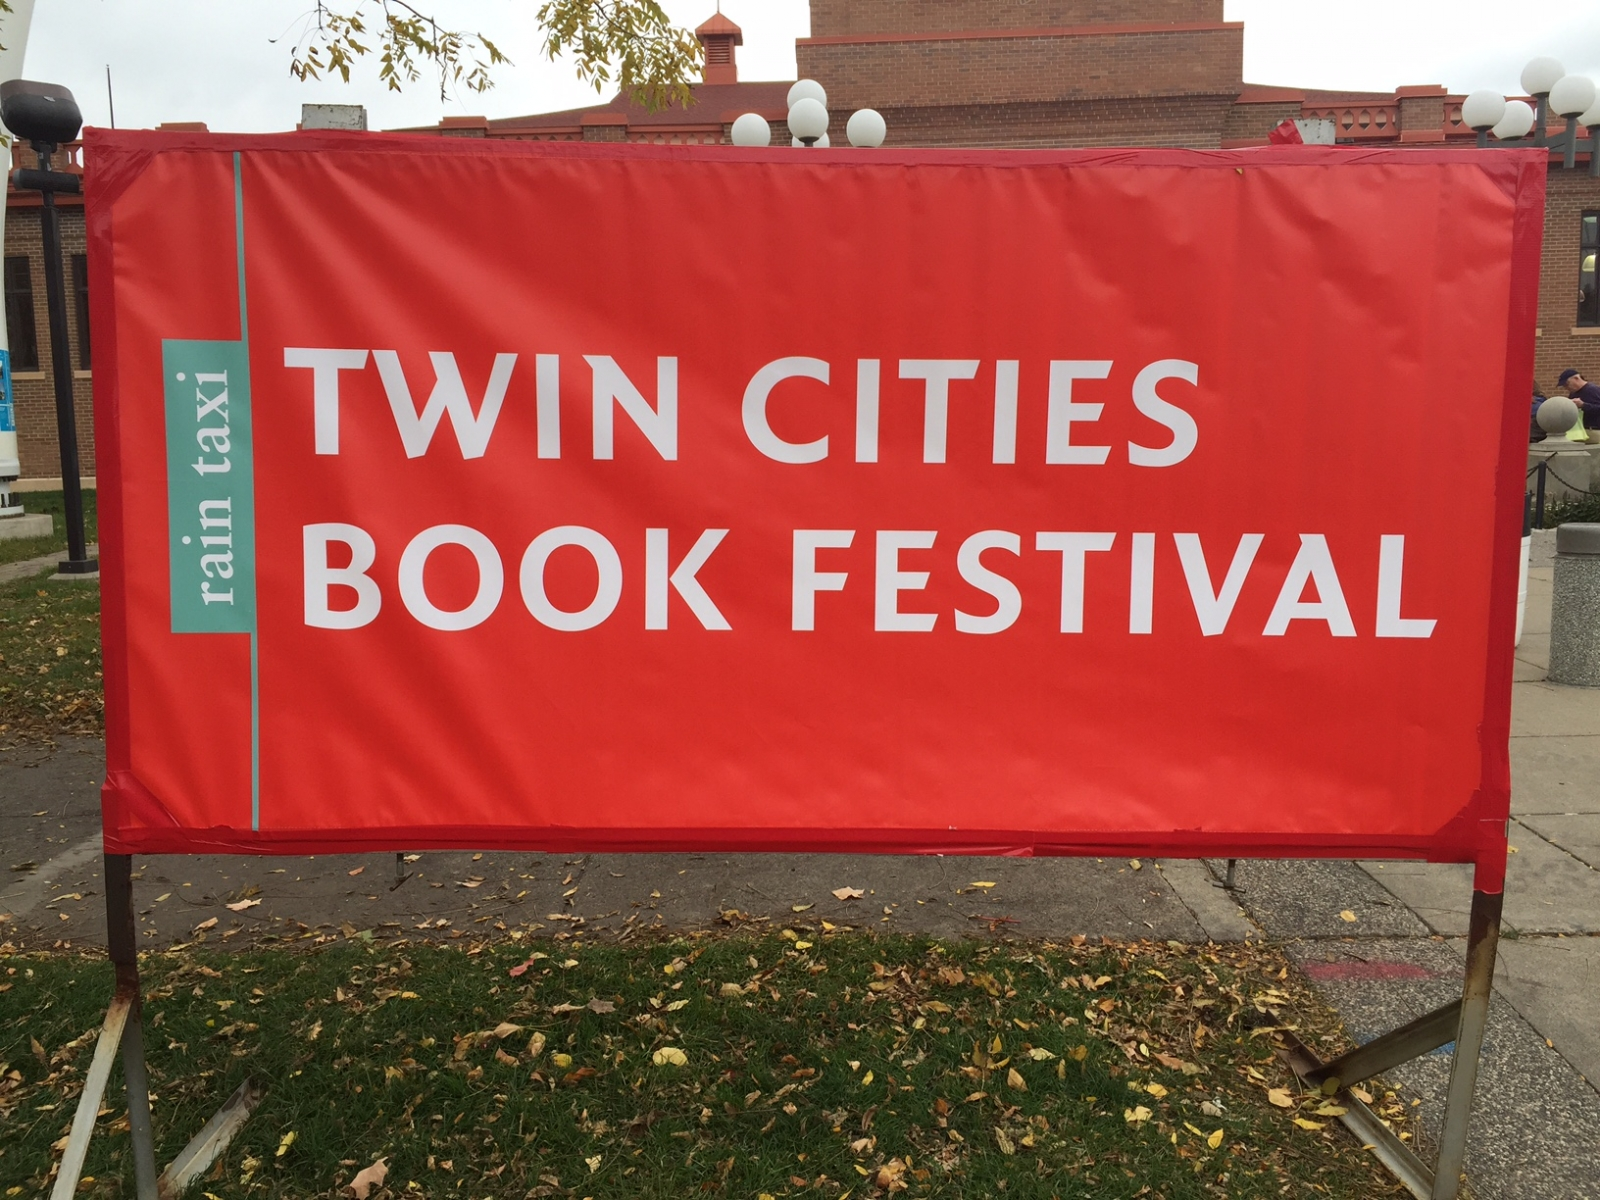 twin cities book festival, minnesota, st. paul, events, state fair, books, literature, local authors, local books, events, festivals